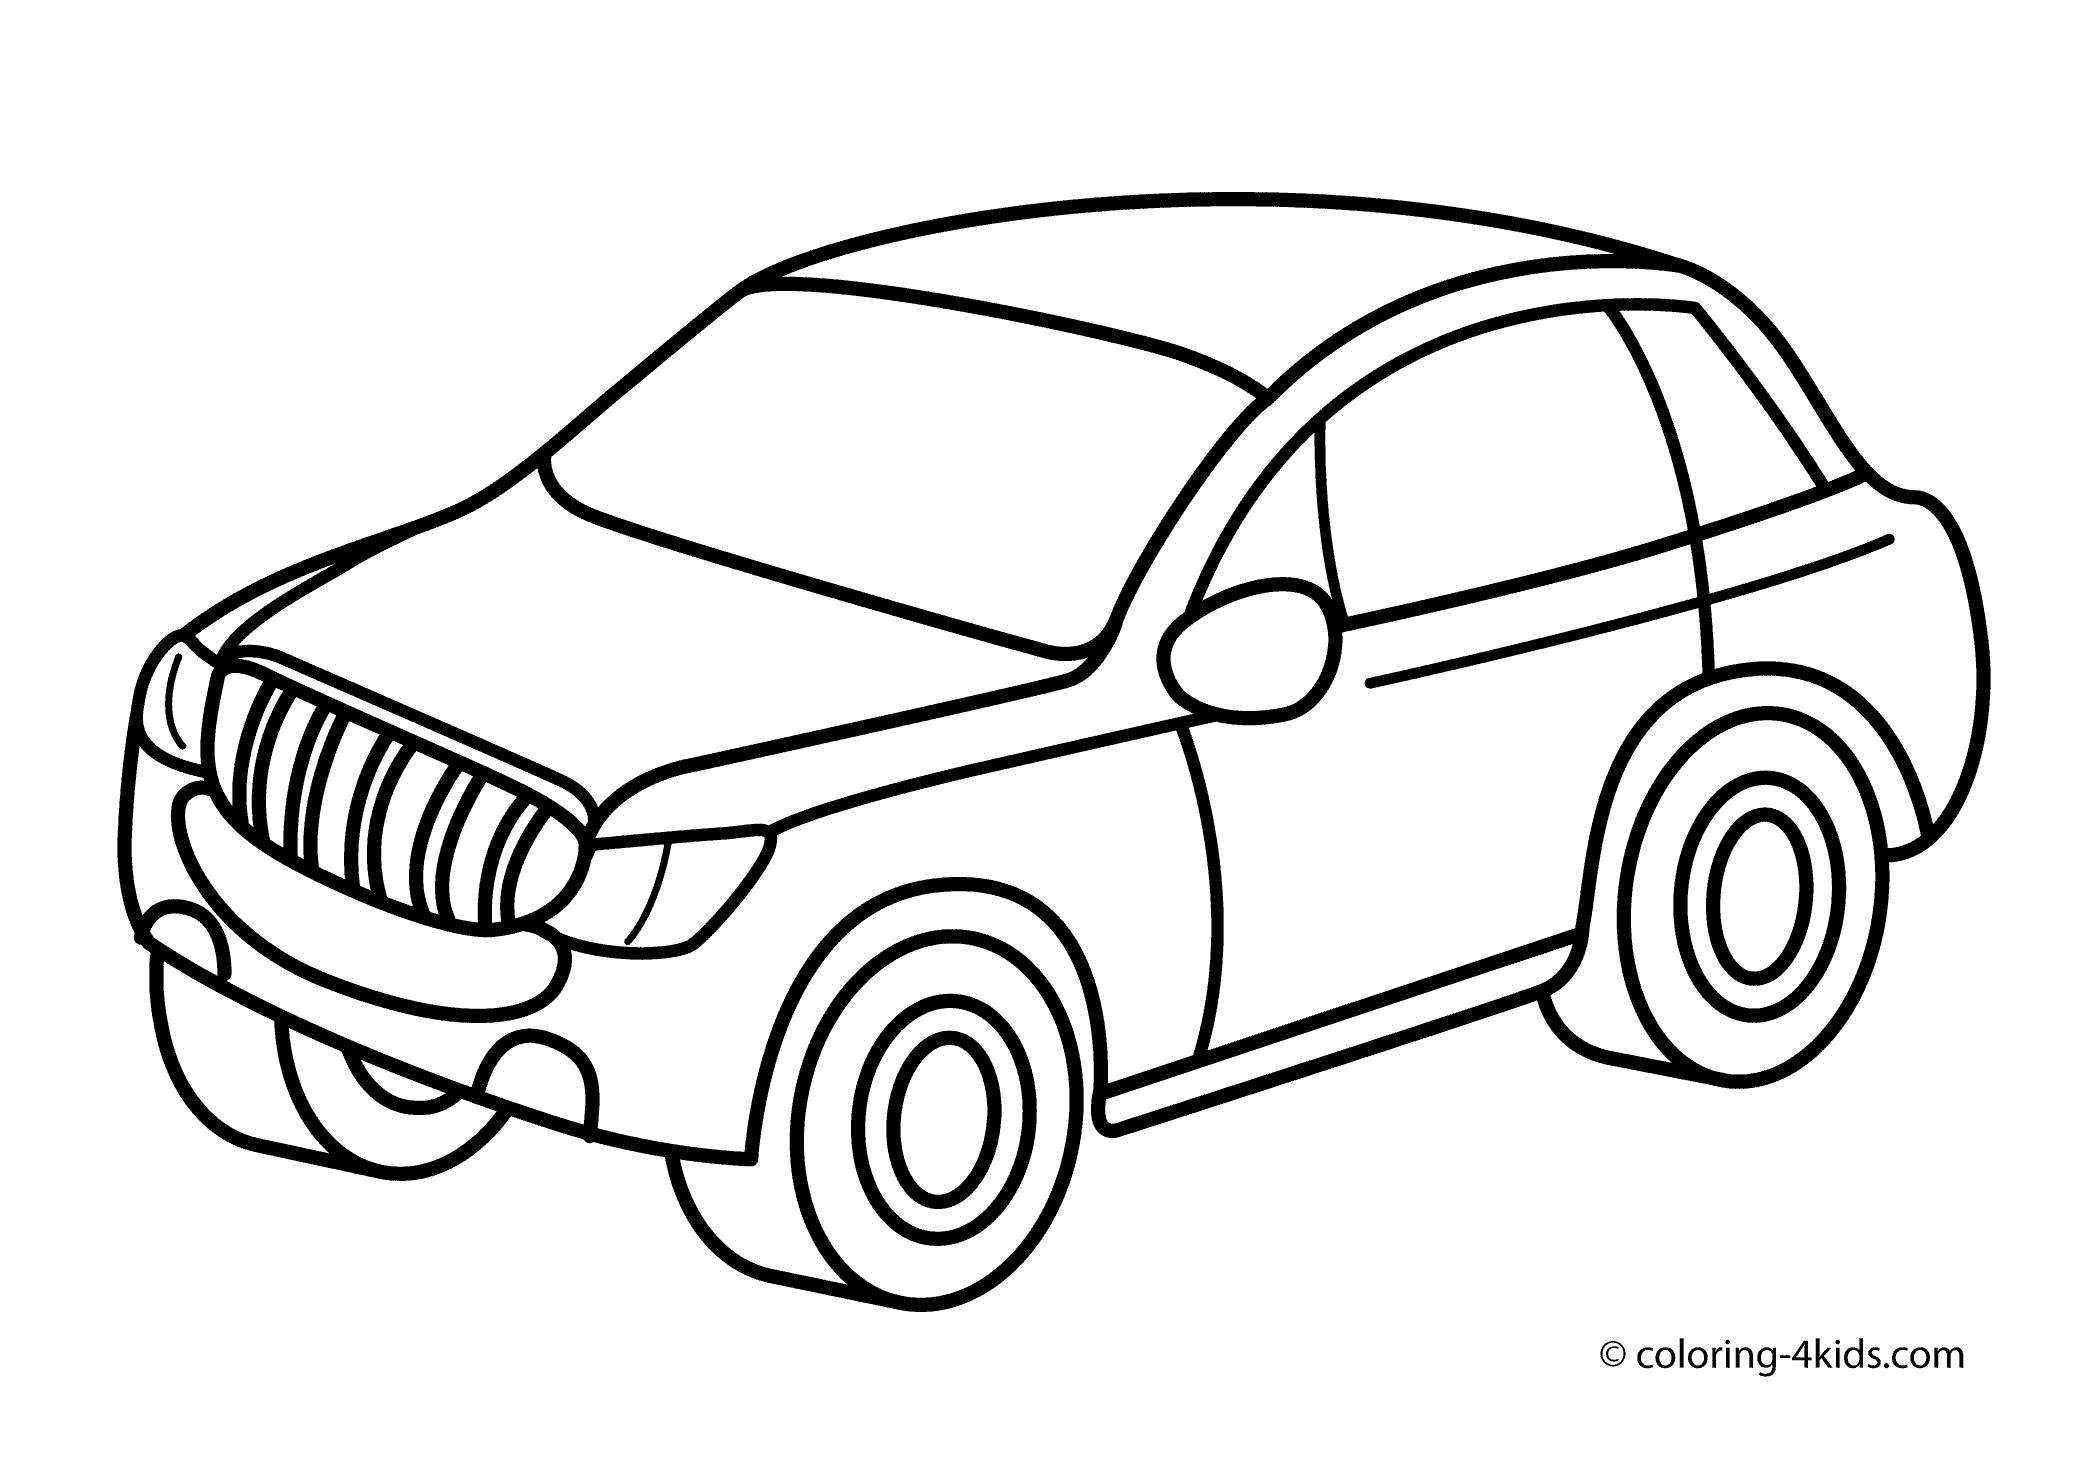 2079x1483 Coloring Pages Jeep Car Transportation Coloring Pages For Kids